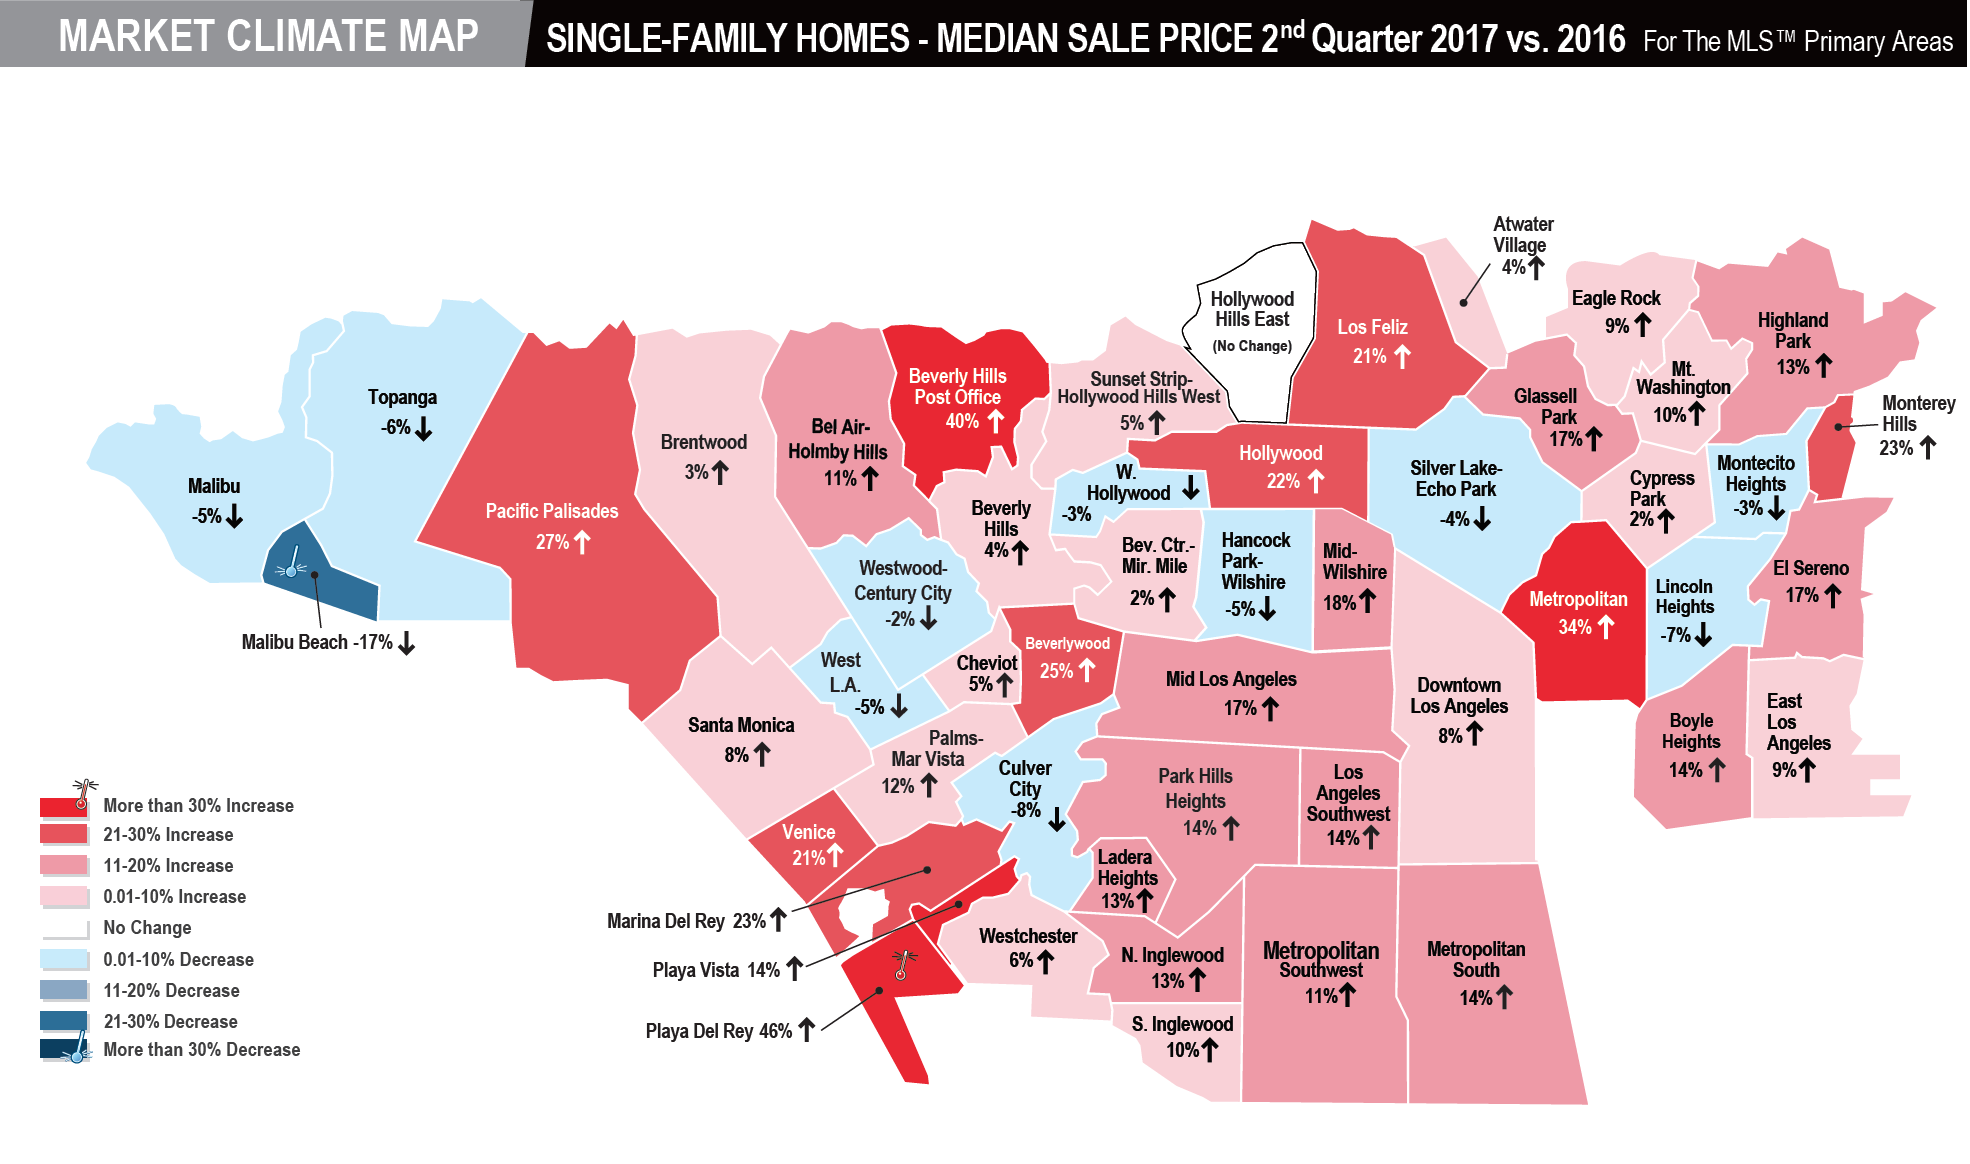 Market Climate Map Single Family Homes Median Sale Price 2nd Quarter 2017 Vs 2016 For The Mls Primary Areas Publish Los Angeles Los Angeles Market Climates